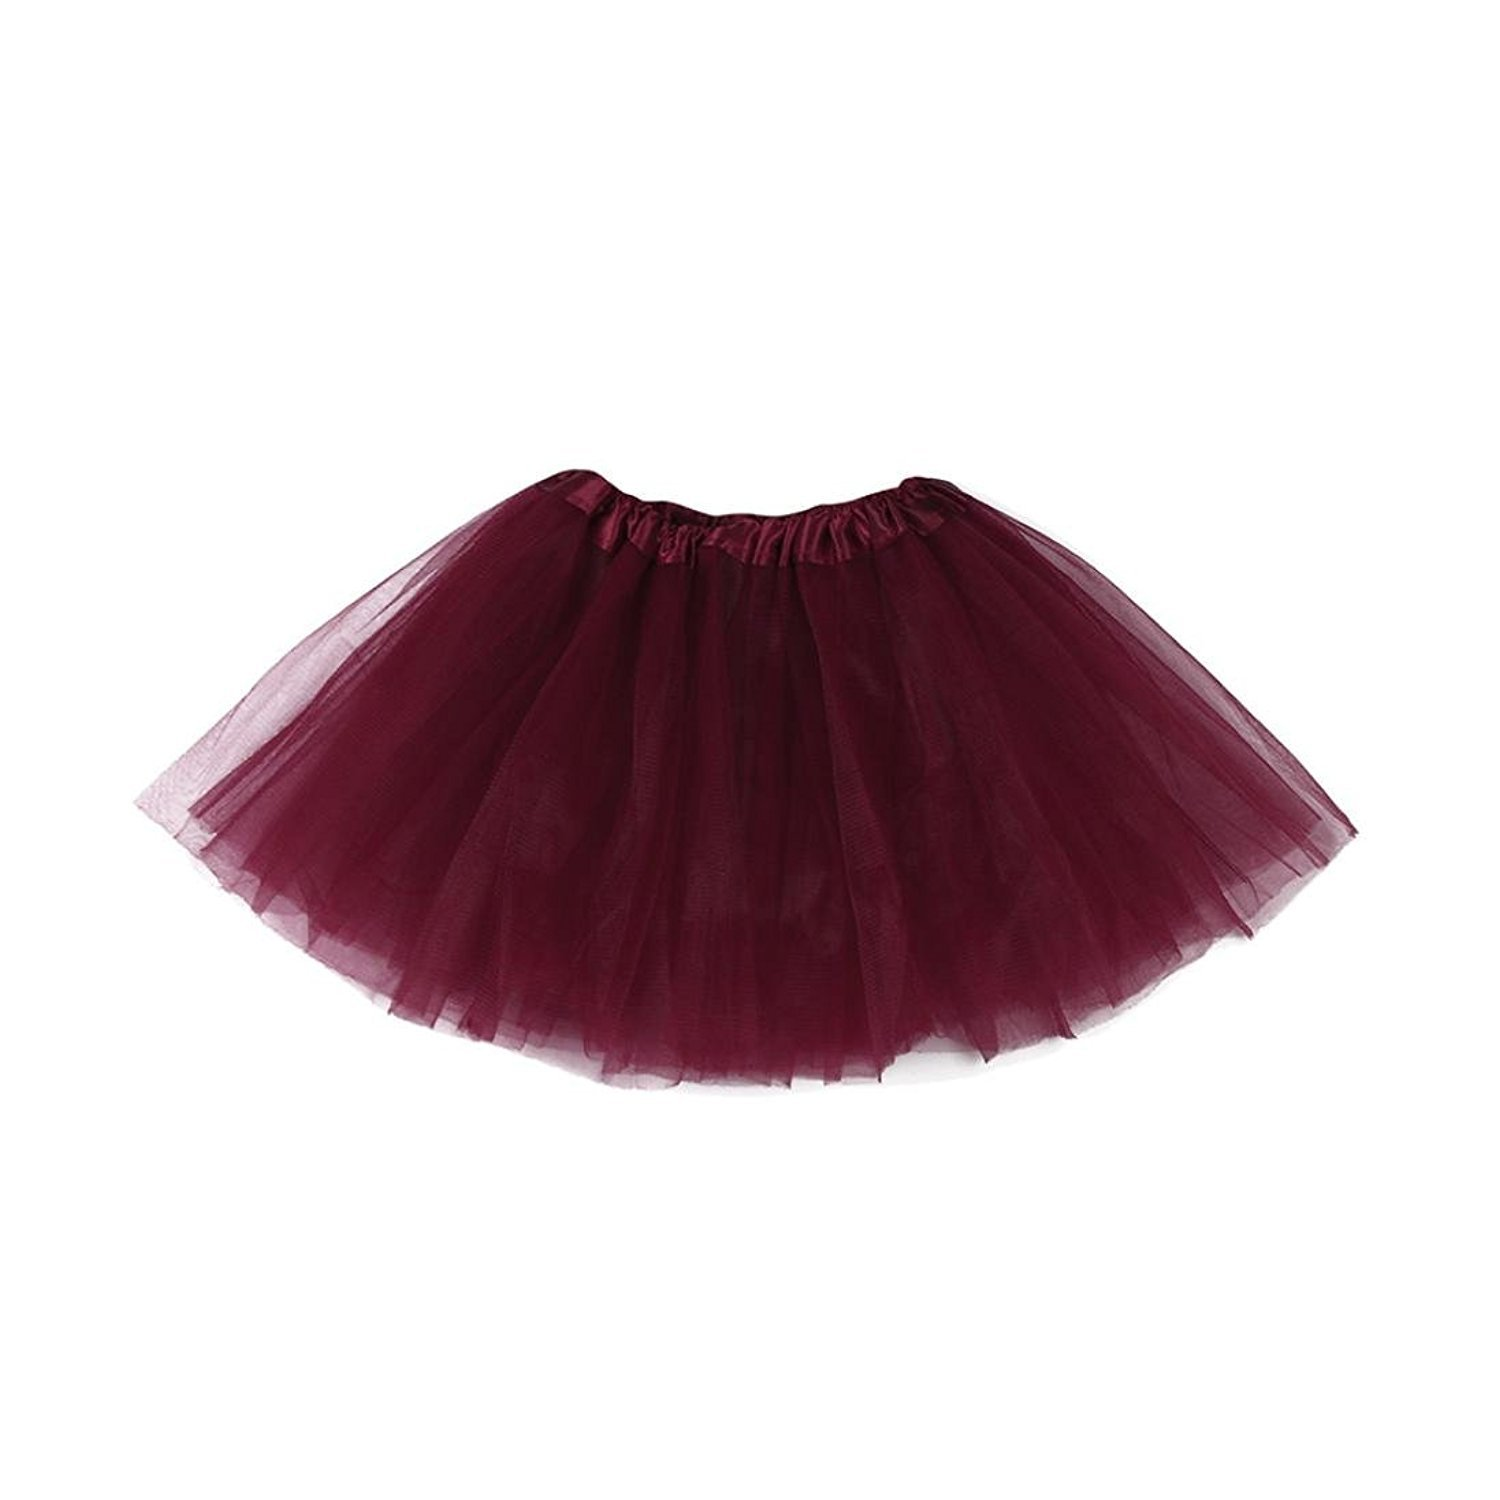 Webla Toddler Girls Kids Solid Tulle Tutu Ballet Skirts Fancy Party Skirt Age 3-10 Years